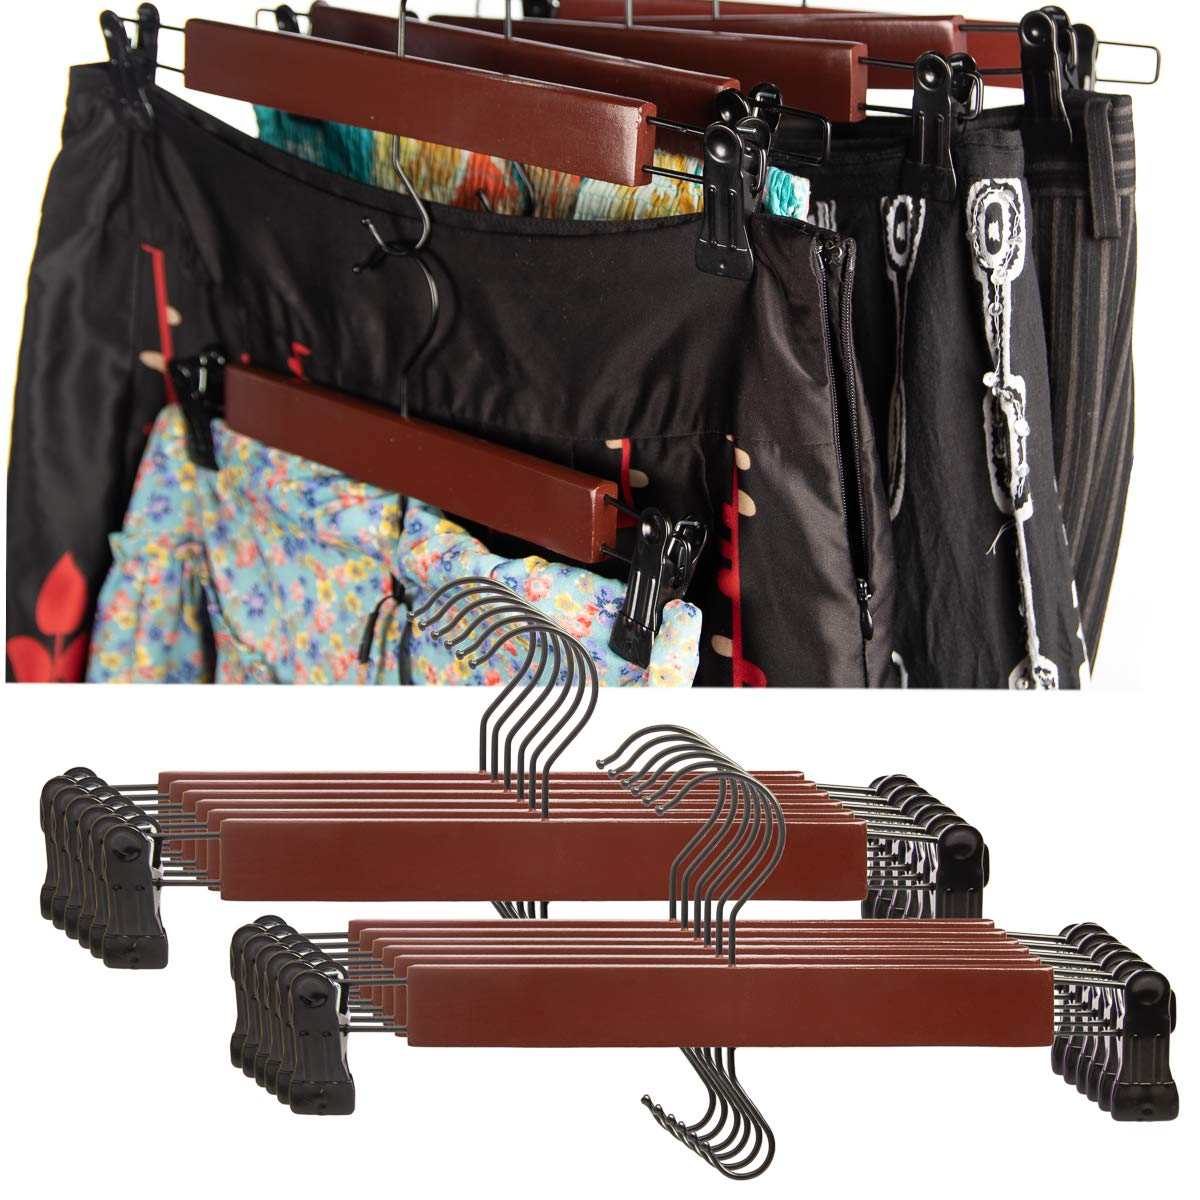 Tidy Living (12 Pack Wood Hangers with Clips Wooden Hangers Cherry Clothes Pants Hanger for Closet